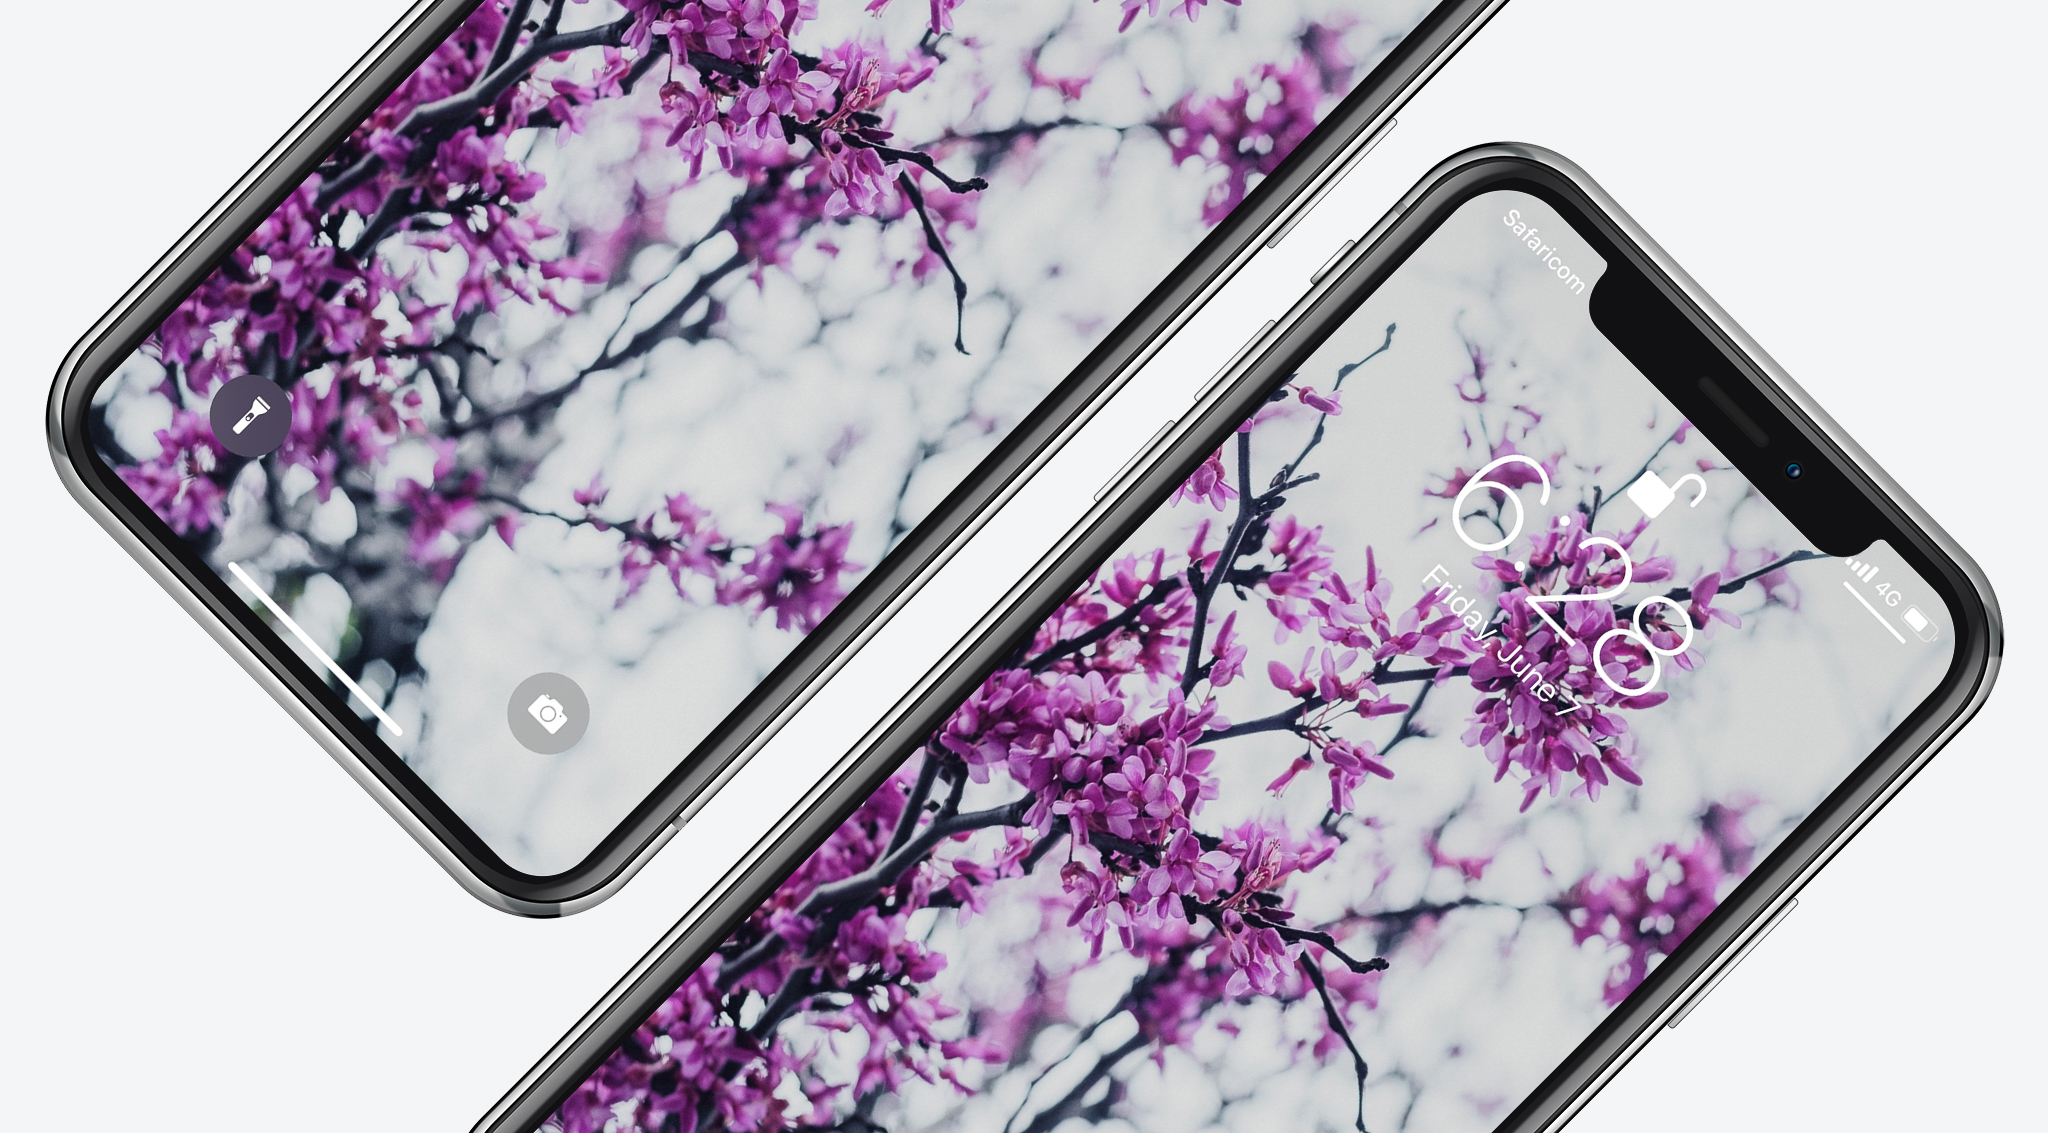 388_Floral [by @OsseGrecaSinare]_Wallpaper_iPhones.jpg